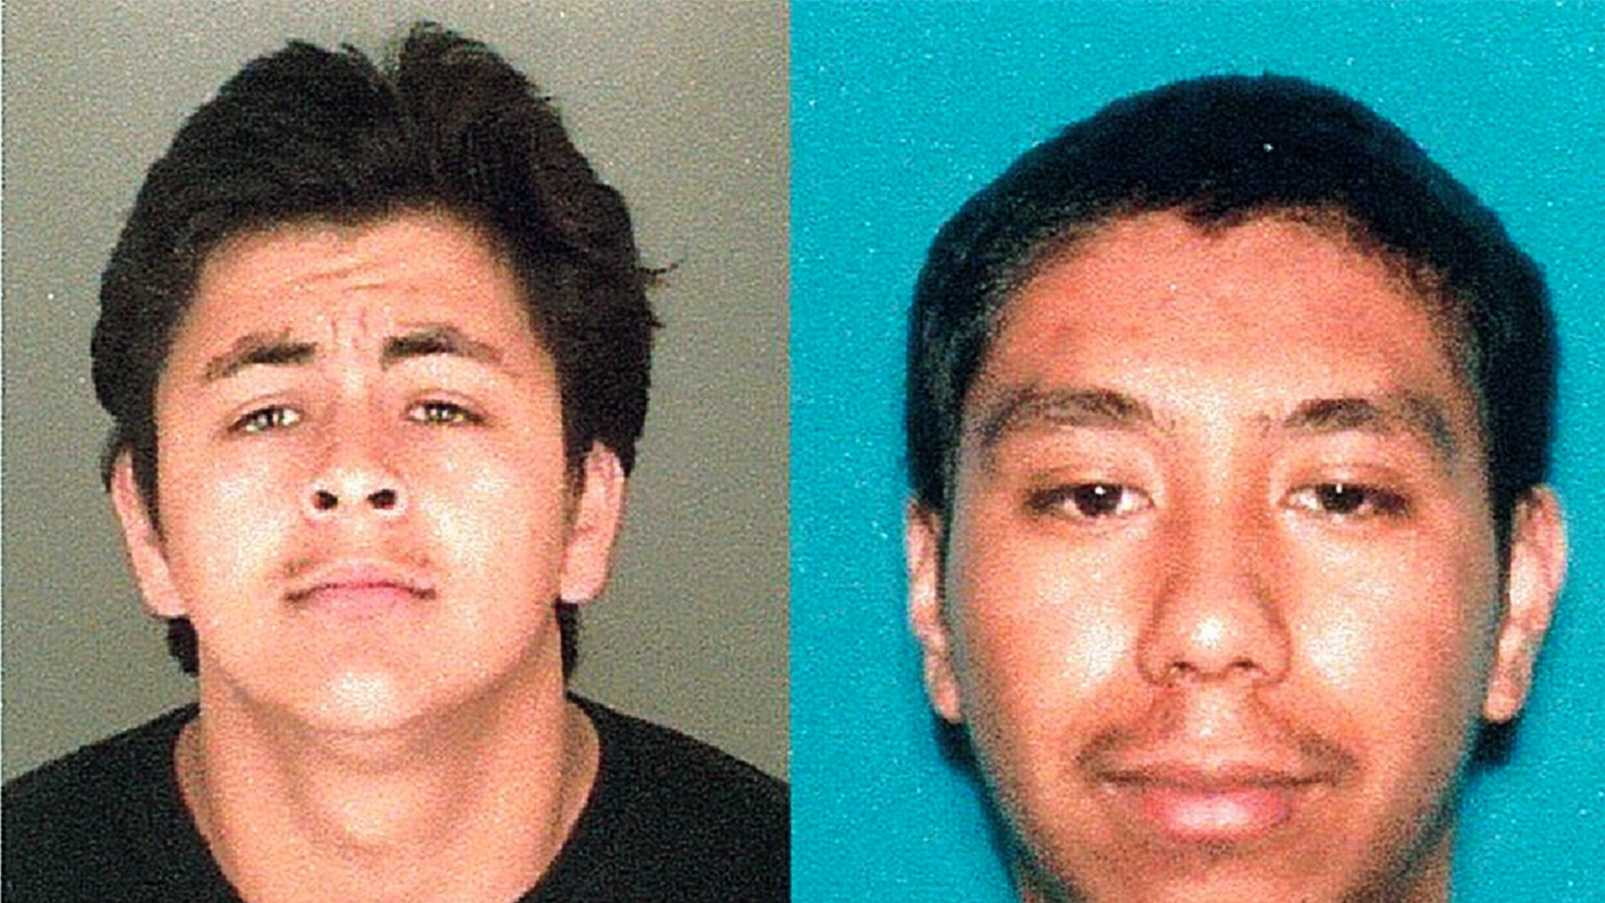 Ivis Ruvalcaba, left, is in jail. Edward Rodriguez, right, is at-large.